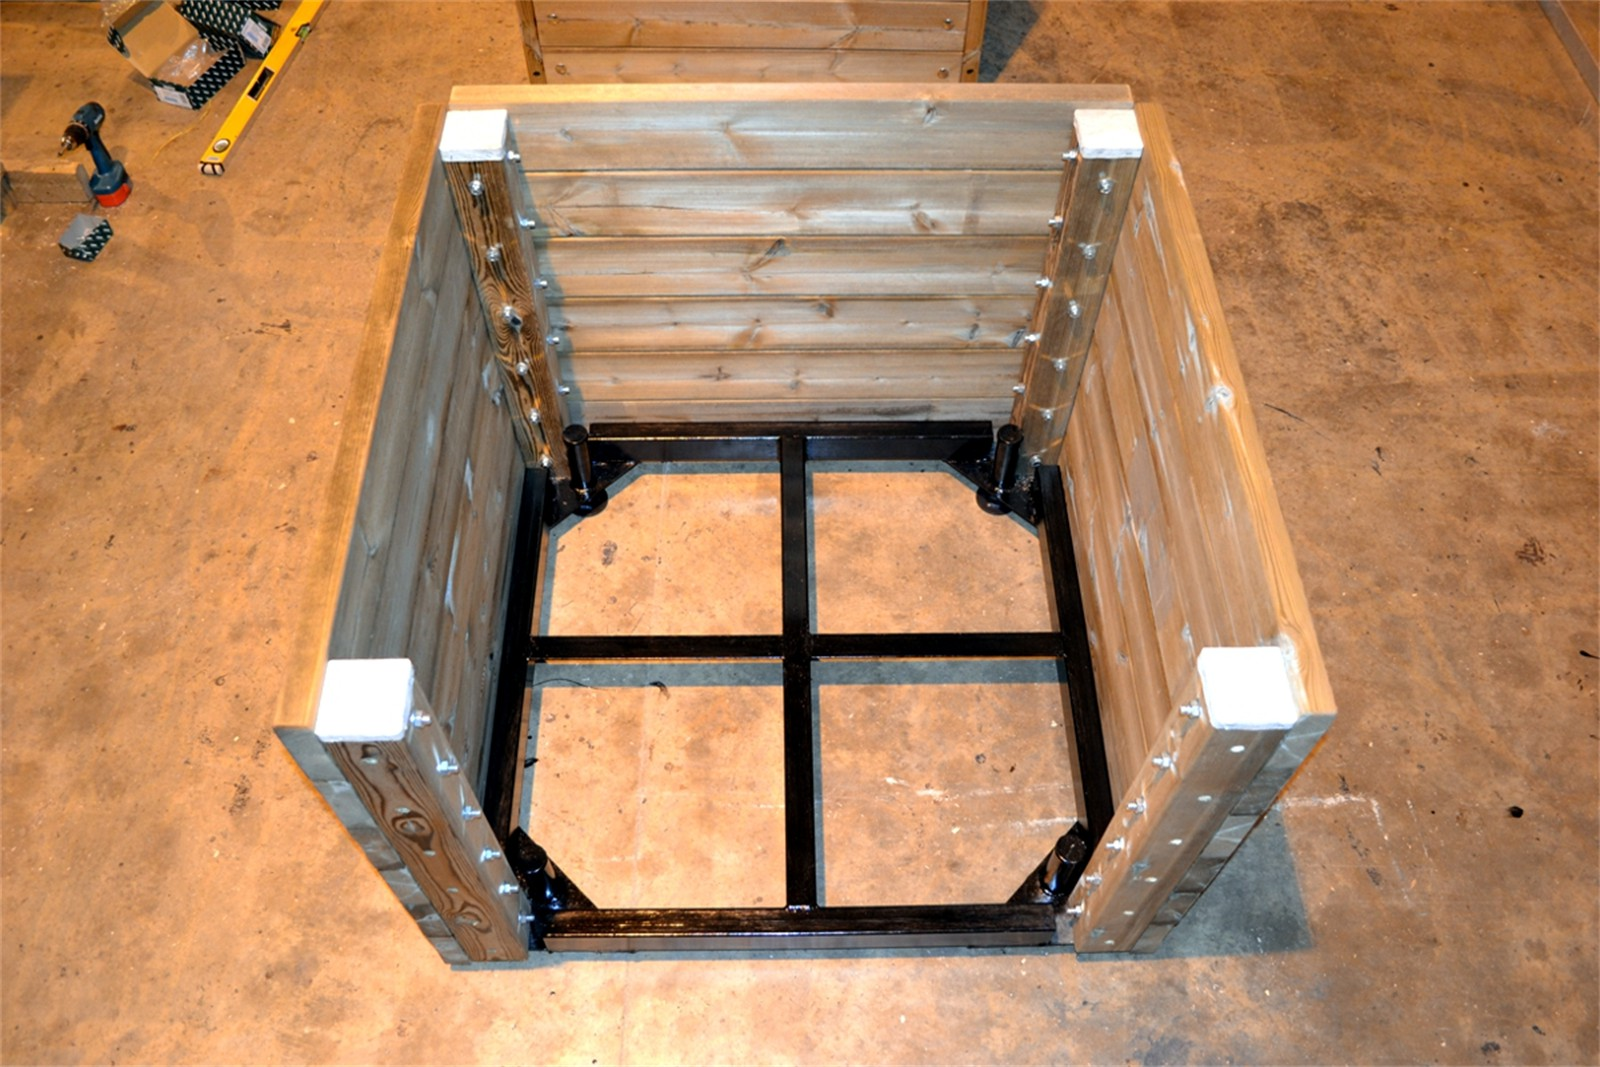 43p03 - Grenadier movable planter with steel base frame